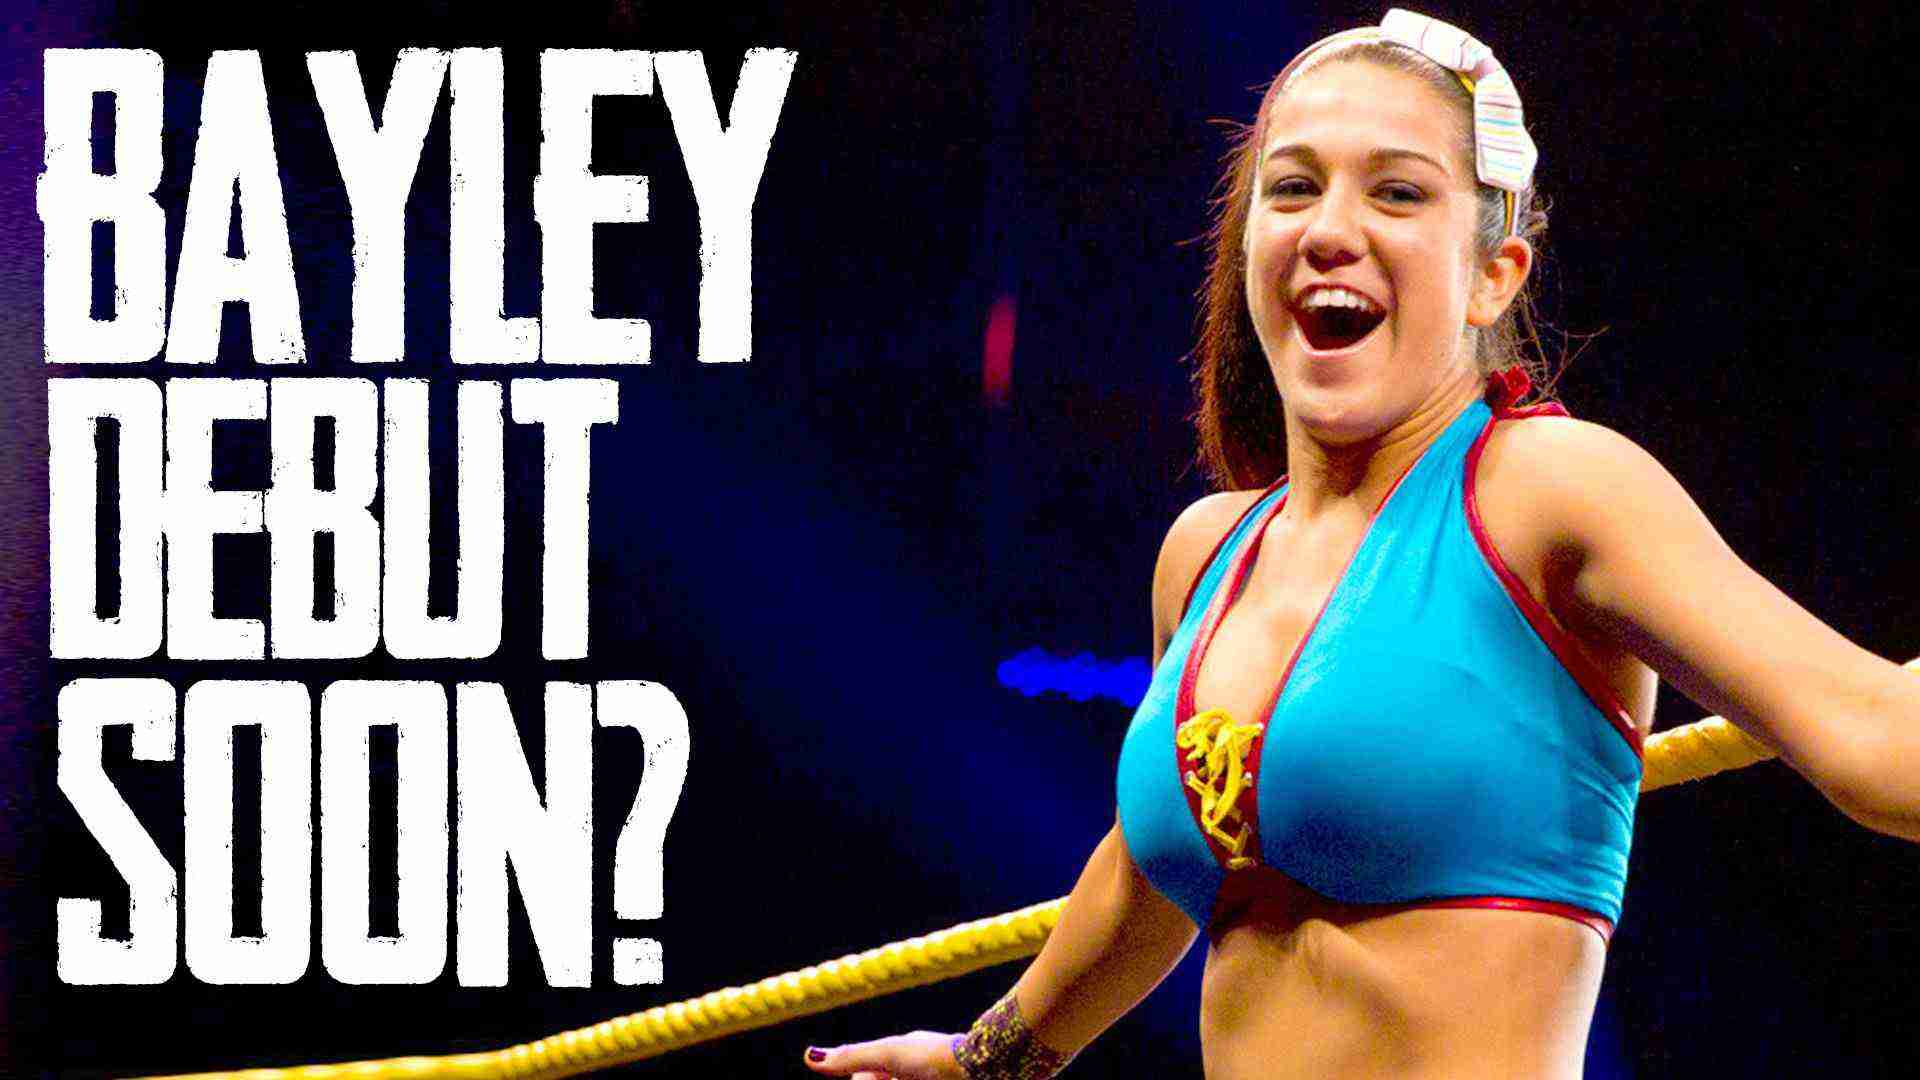 BAYLEY TO DEBUT AT WWE BATTLEGROUND? (NXT and WWE Smackdown Recap and Results w/ Steve and Larson)